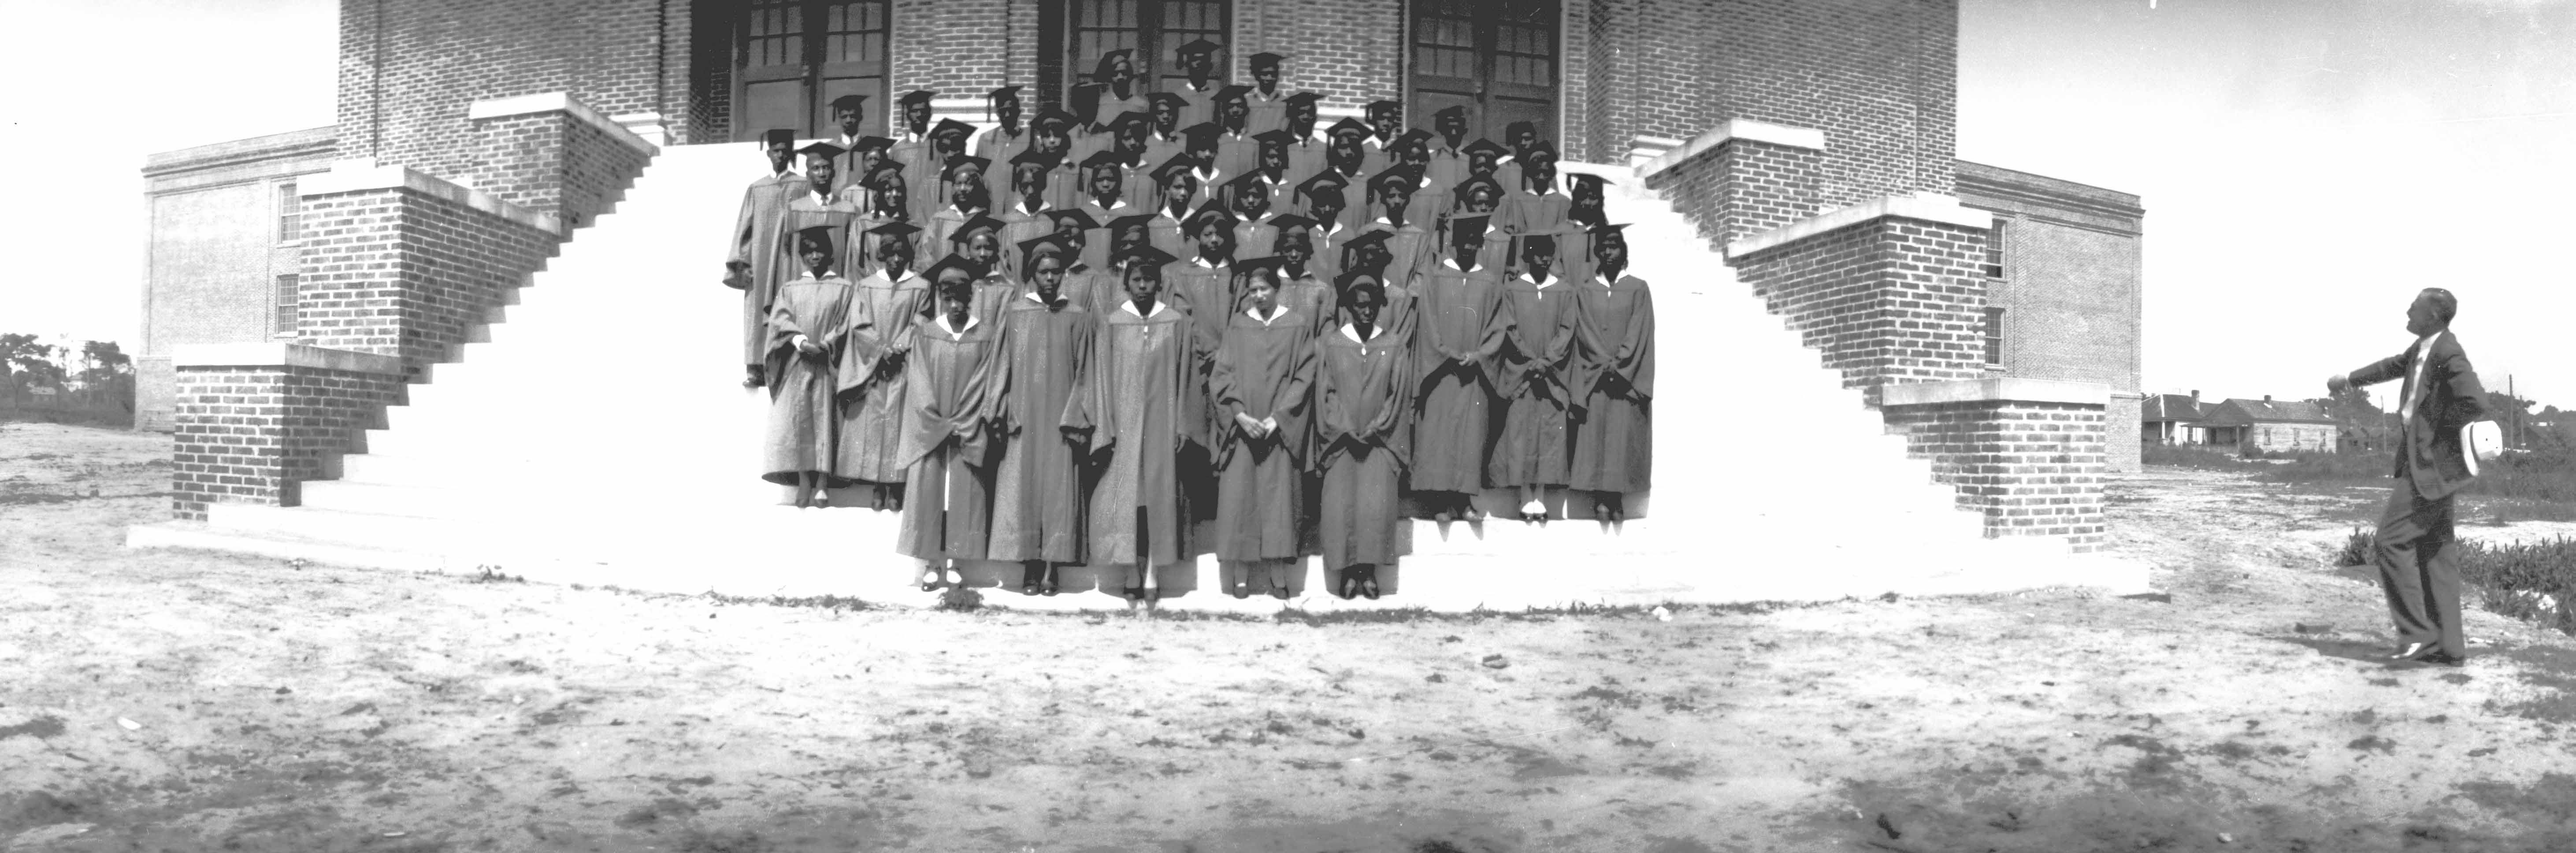 Members of the Williston High School Class of 1931 pose on the steps of a new building: the third Williston High School structure.